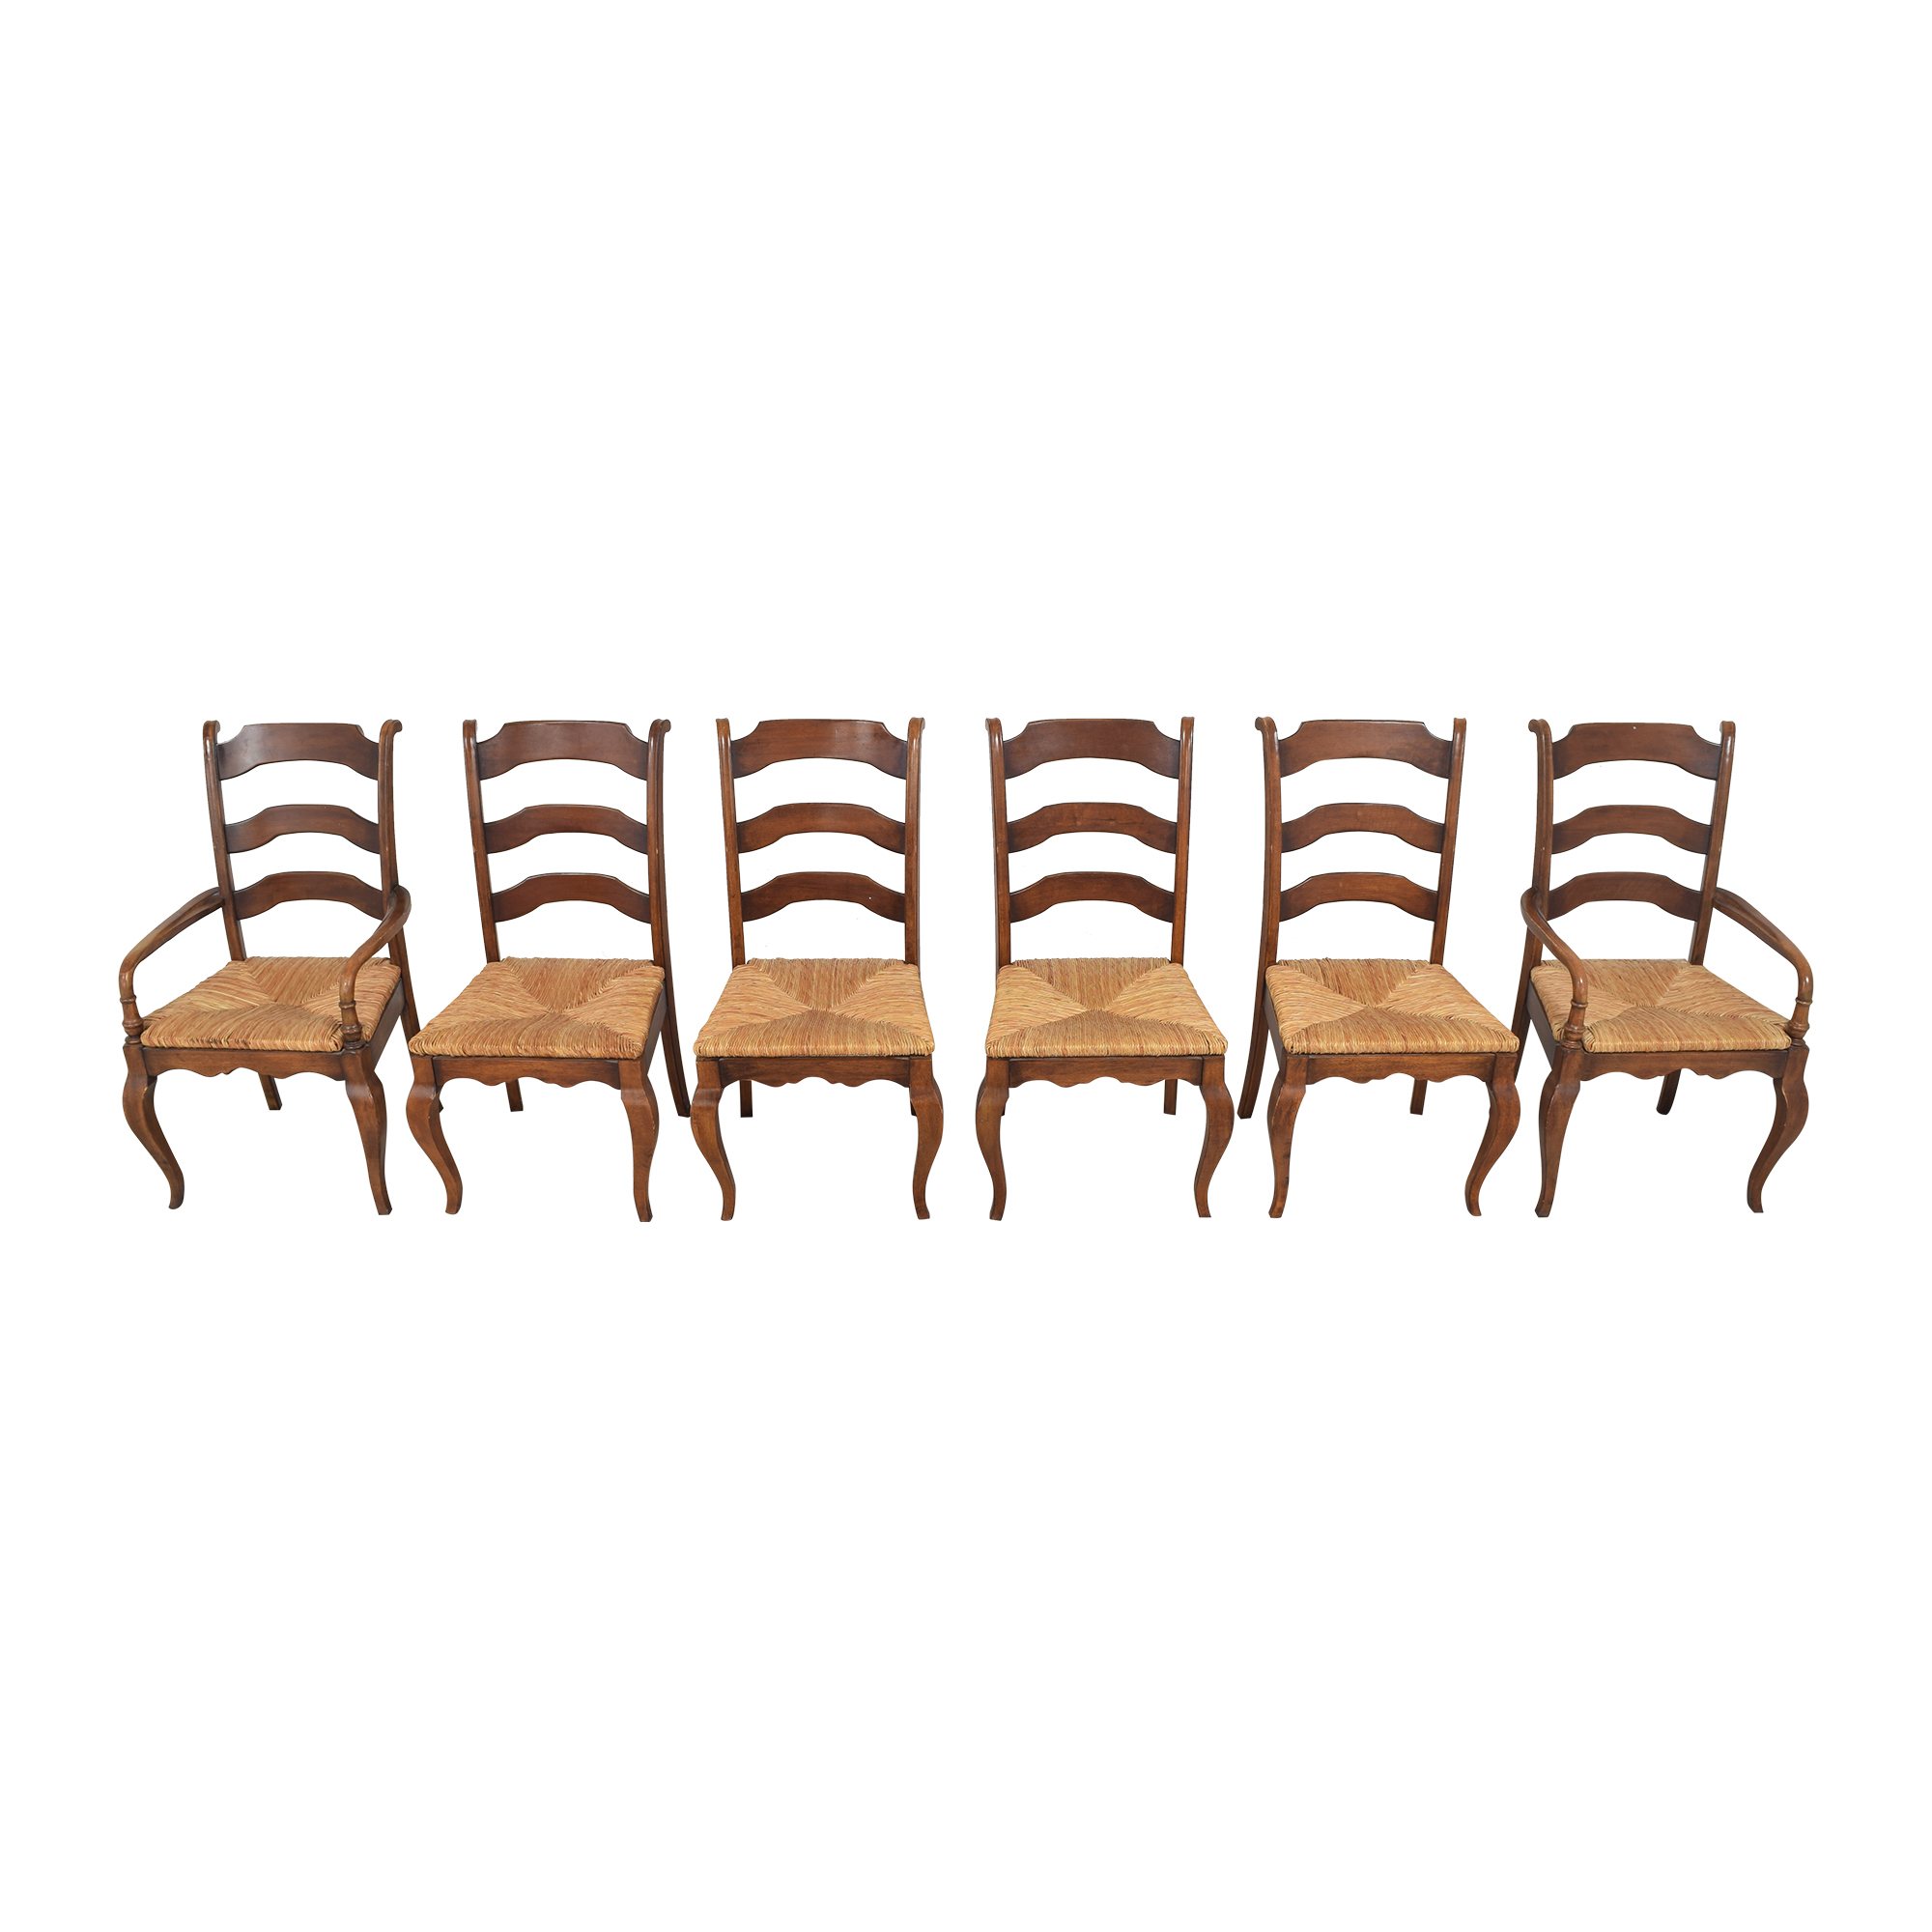 Hooker Furniture Hooker Furniture Woven Seat Dining Chairs Chairs